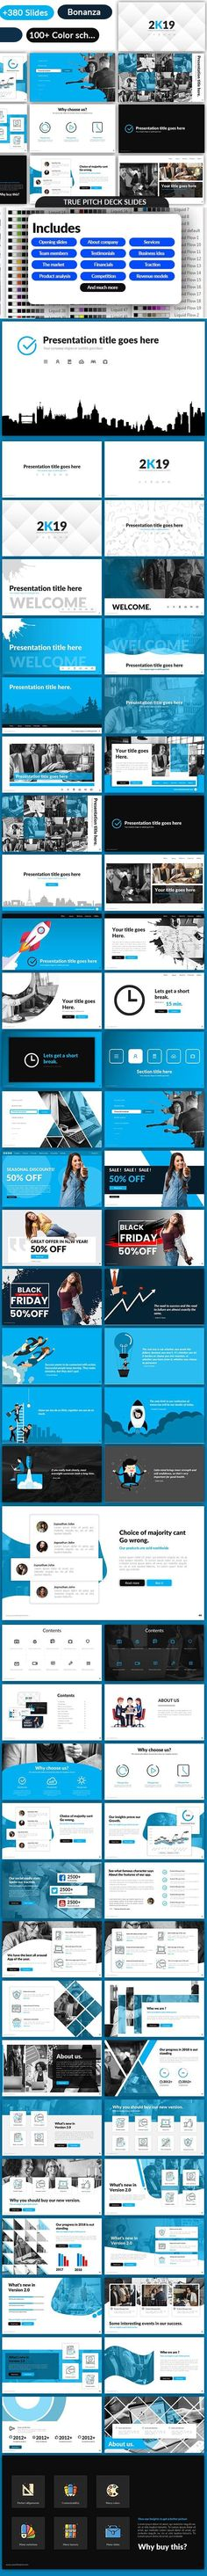 Buy Elakiriz - Pitch Deck Tool Kit by anchor_point_heshan on GraphicRiver. Elakiriz – Pitch Deck Presentation Template Features More than 380 unique slides More than 100 color schemes Very ea. Presentation Design Template, Business Presentation, Design Templates, City Vector, Picture Places, Business Powerpoint Templates, Banner Vector, Icon Font, Line Icon